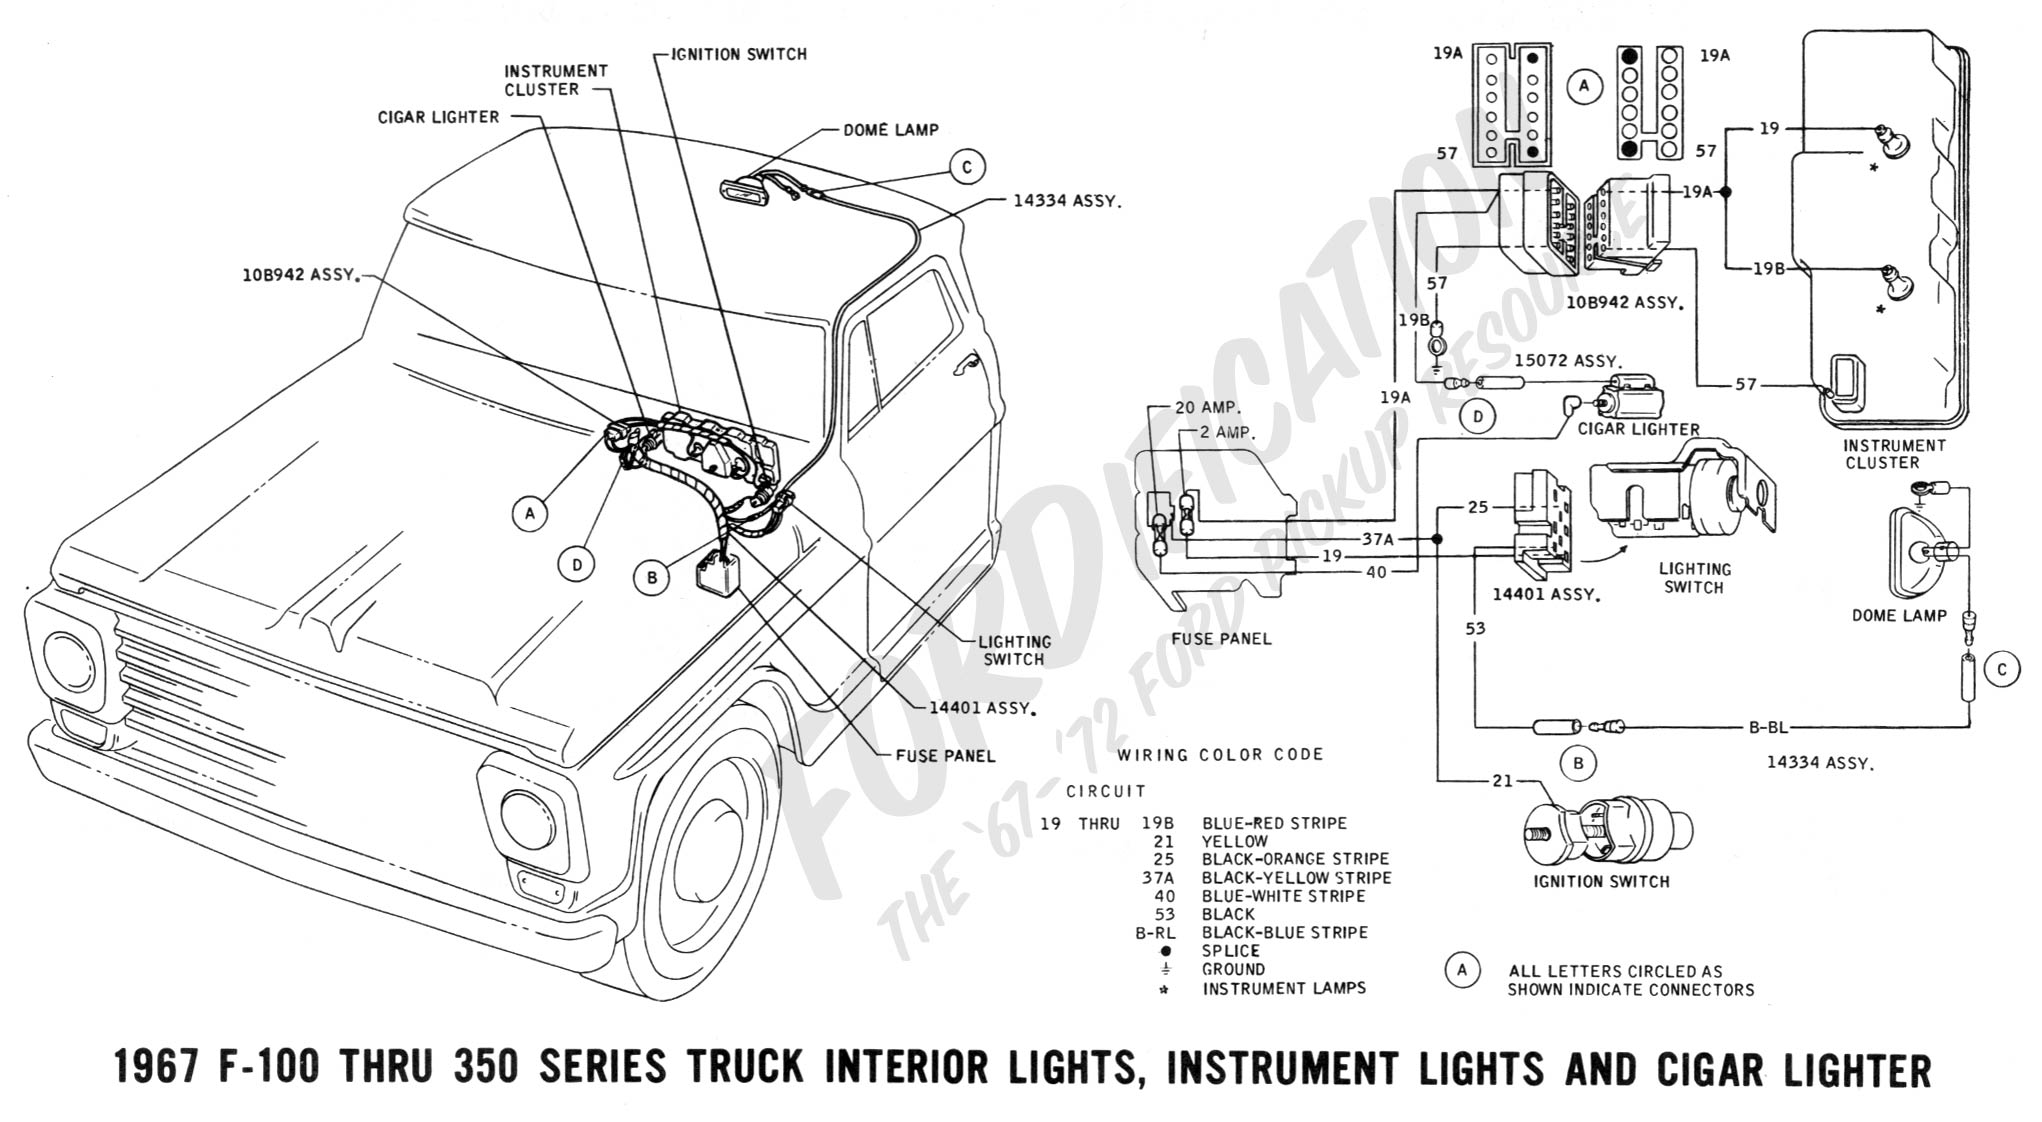 1995 chevy s10 wiring diagram 1995 discover your wiring diagram 72 ford f 250 ignition wiring diagram 1963 chevy truck